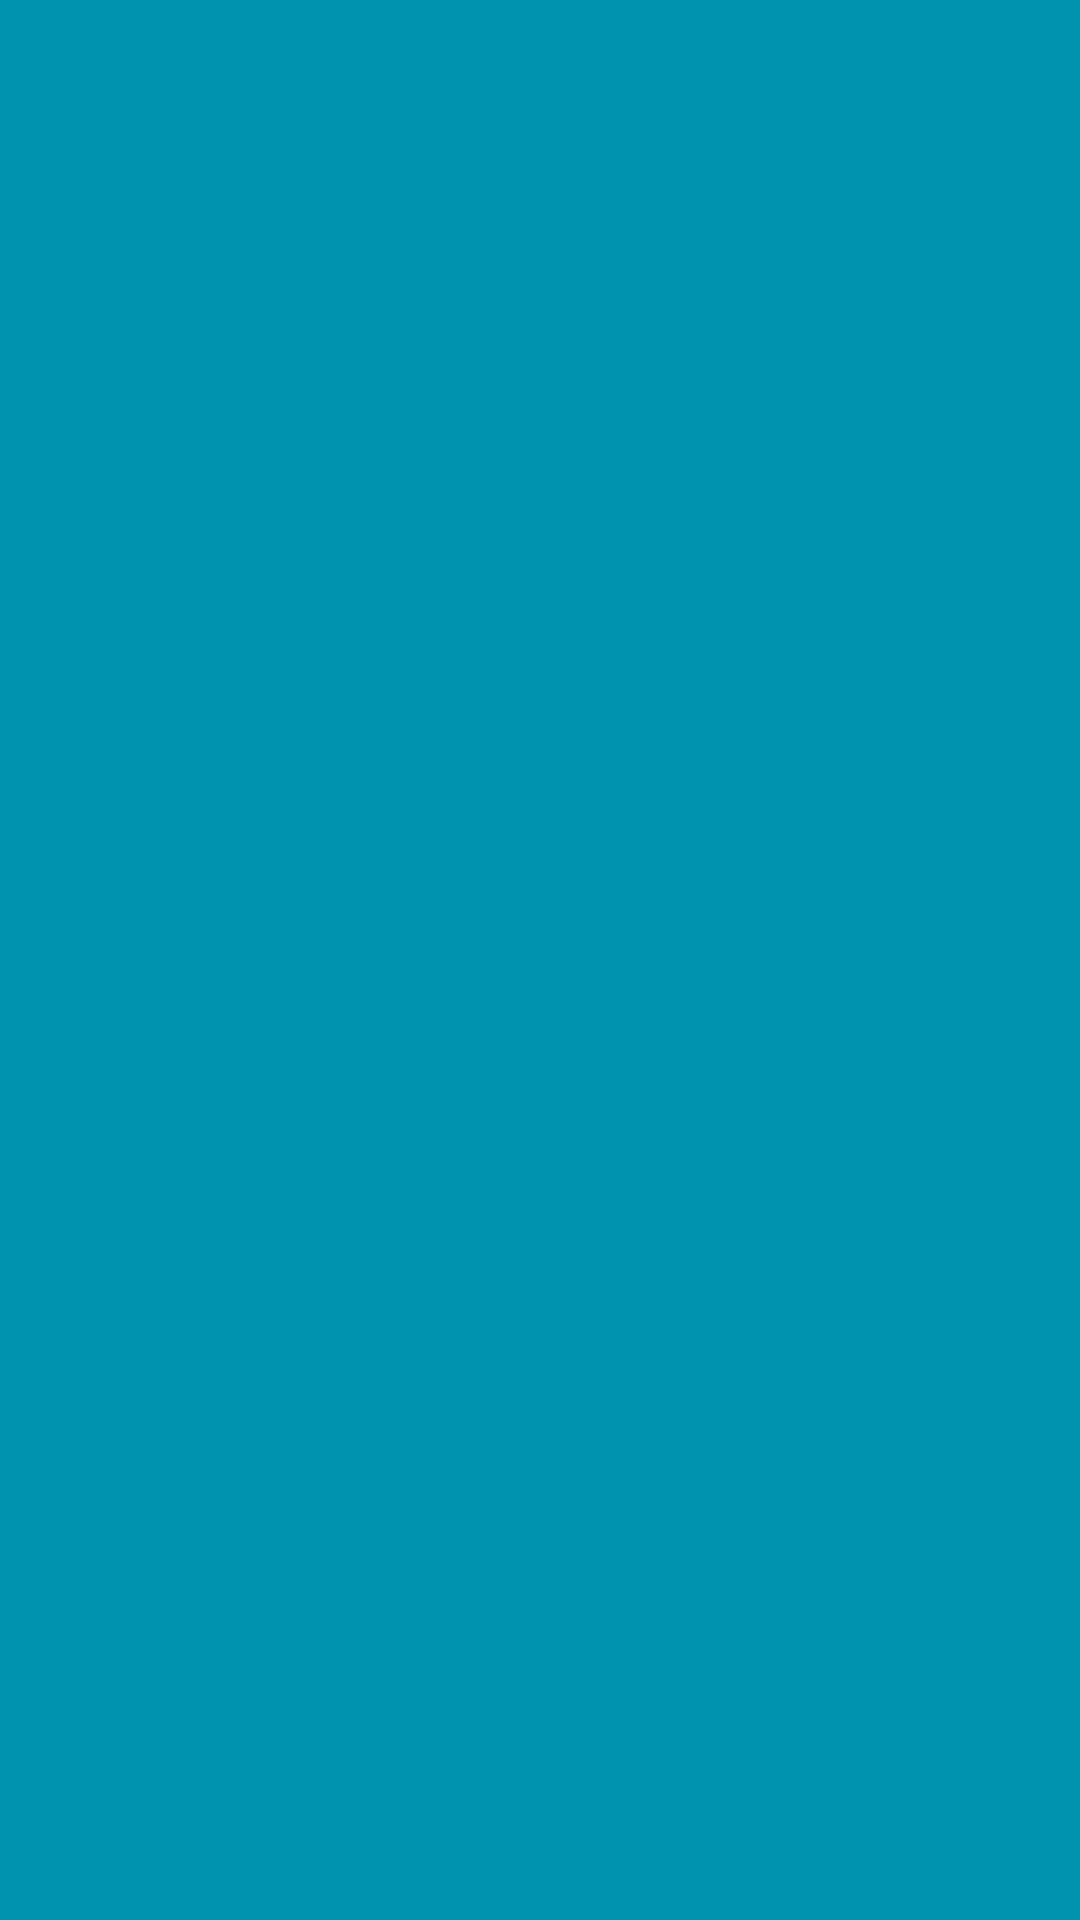 1080x1920 Blue Munsell Solid Color Background